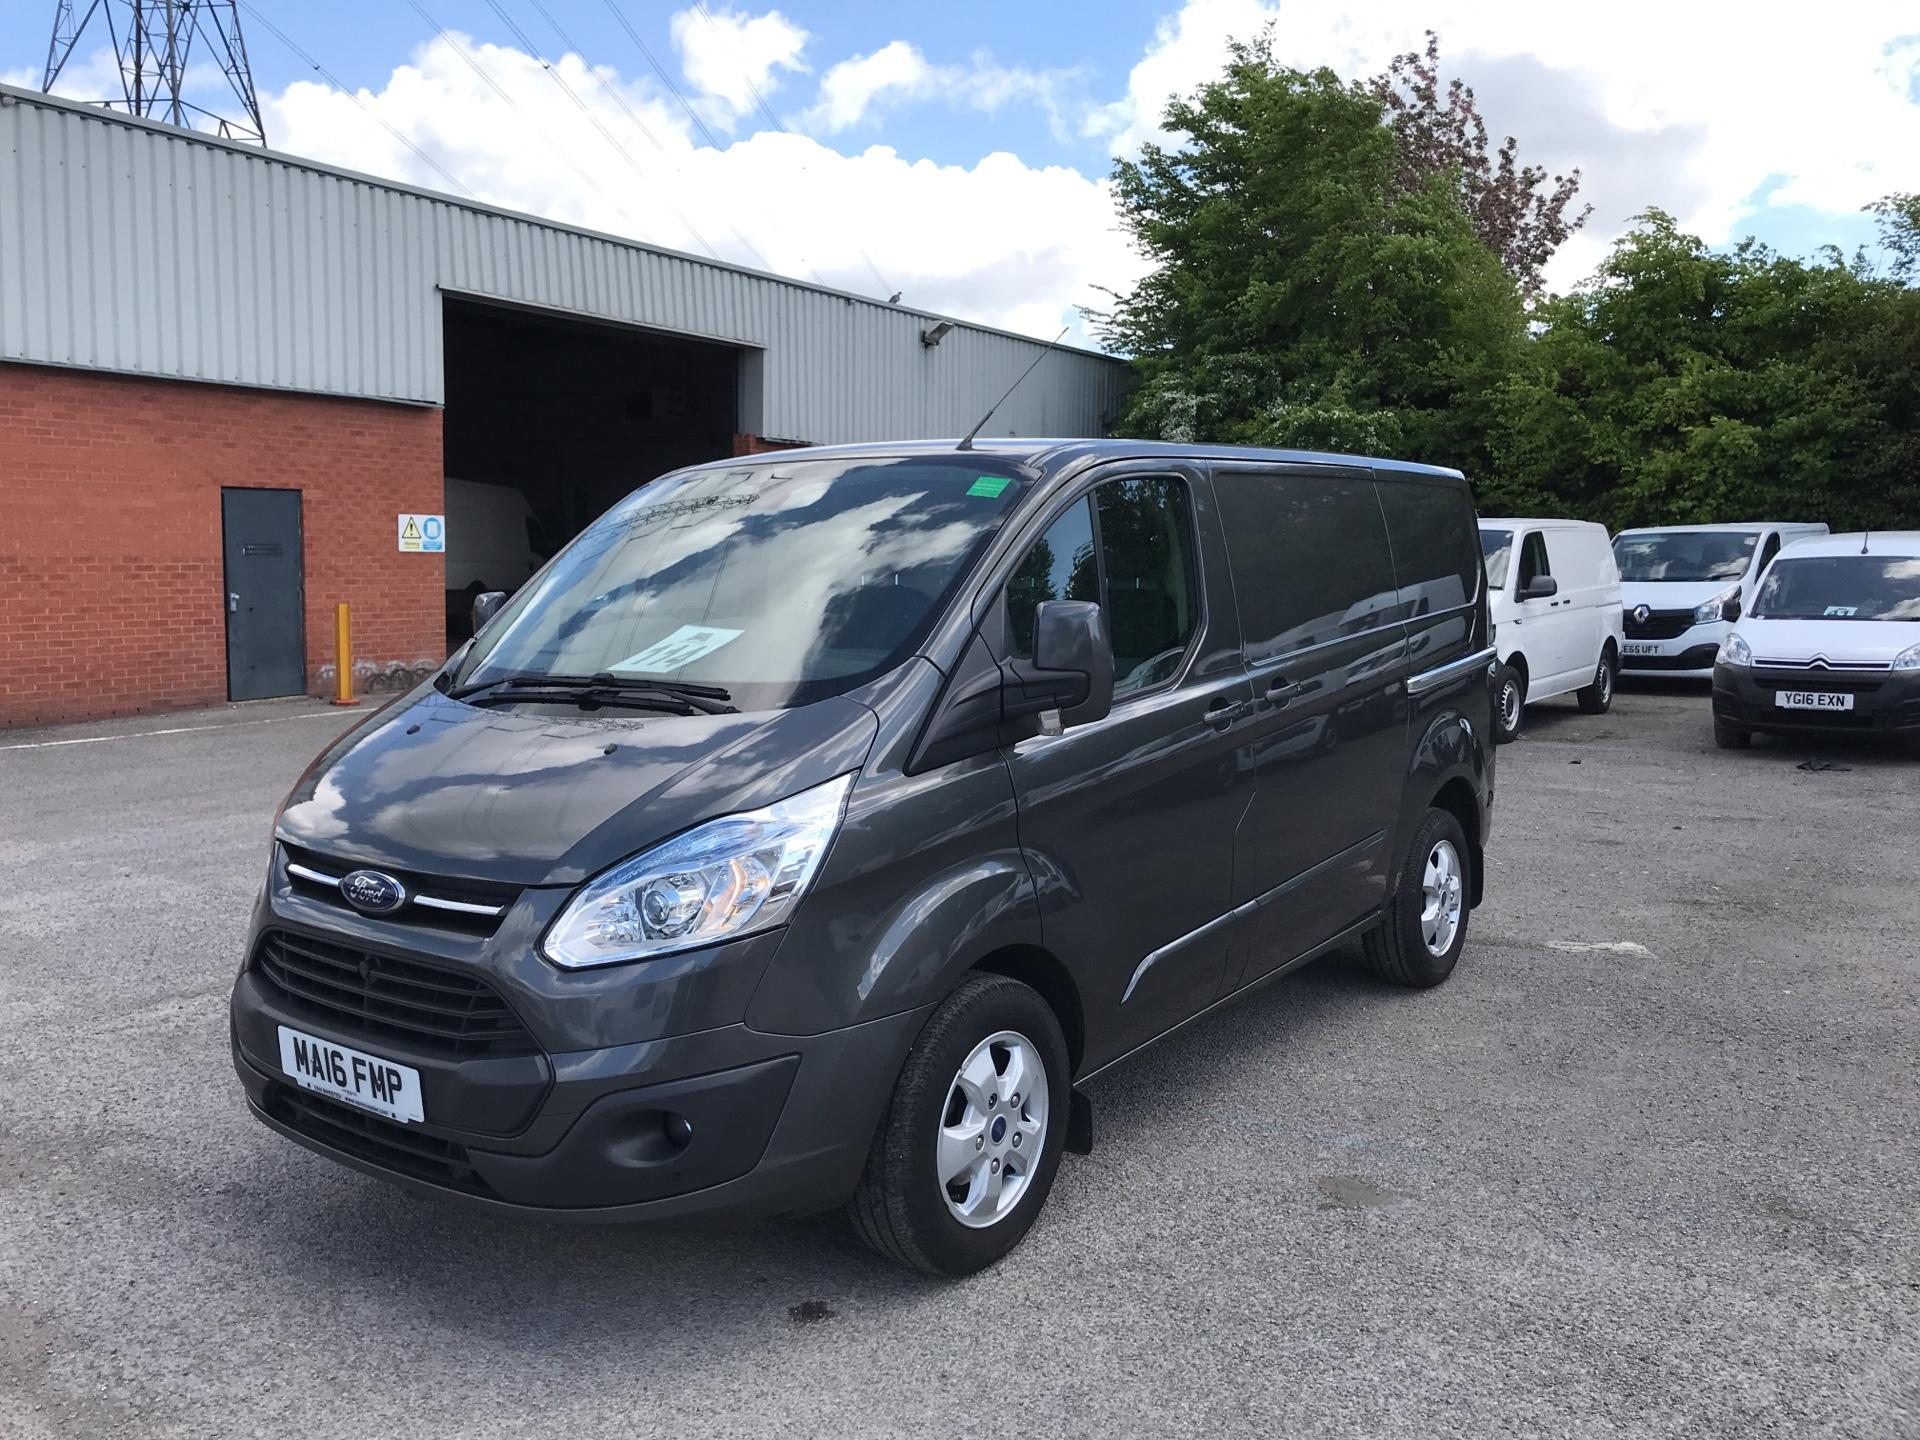 2016 Ford Transit Custom 2.2 Tdci 155Ps Low Roof Limited Van EURO 5 (MA16FMP) Image 7